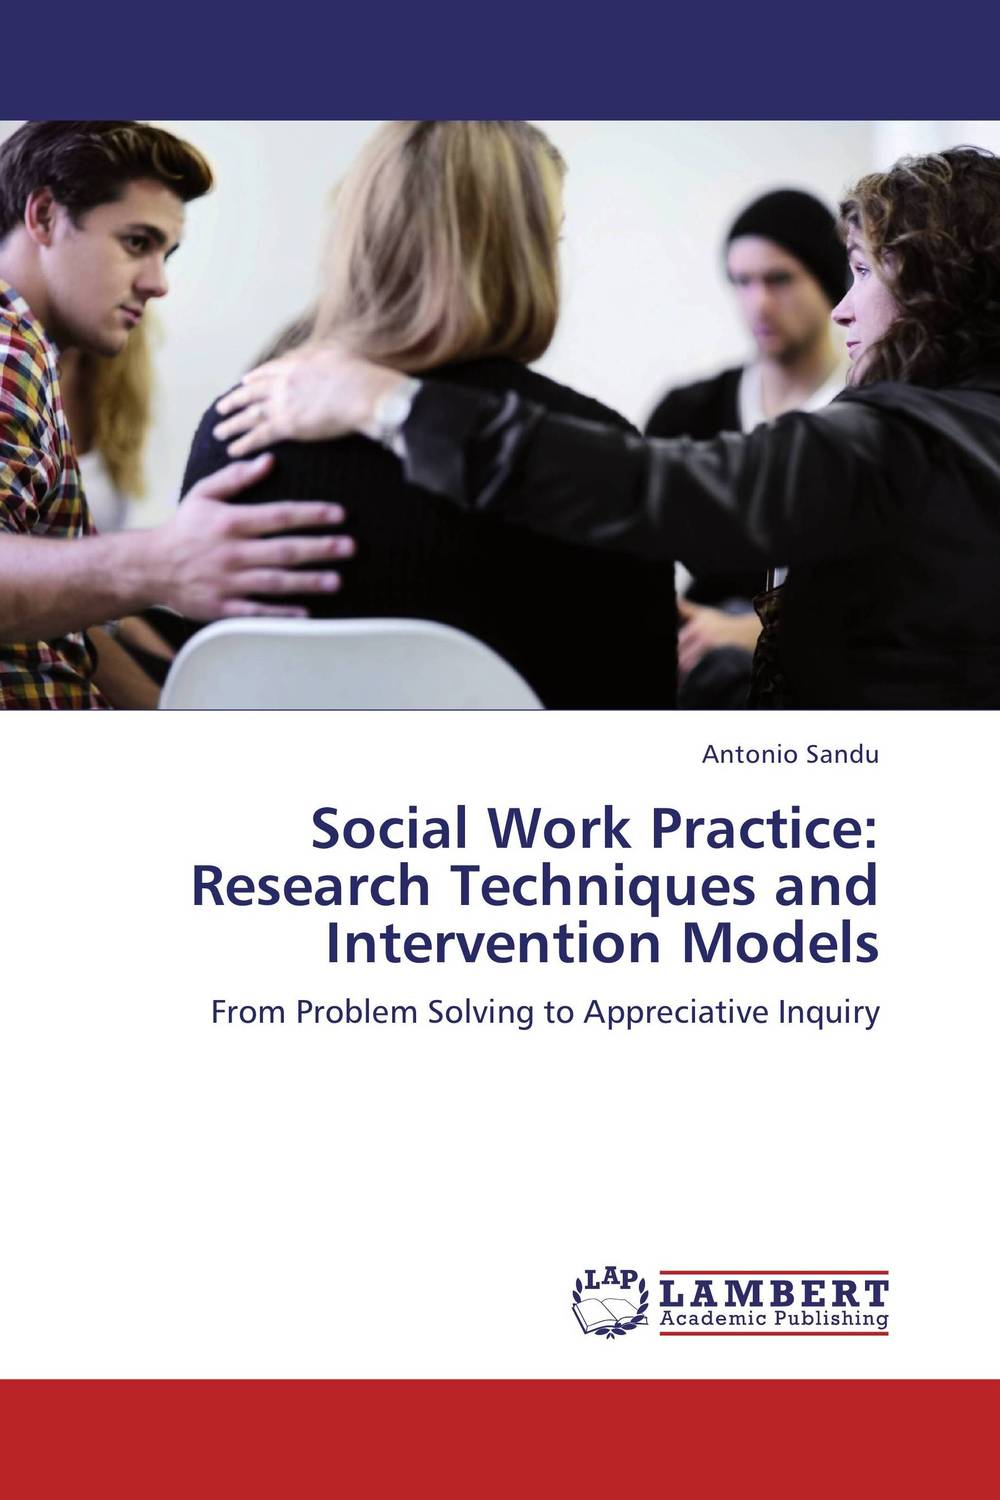 Social Work Practice: Research Techniques and Intervention Models the viabilities of musyarakah as social protection mechanism